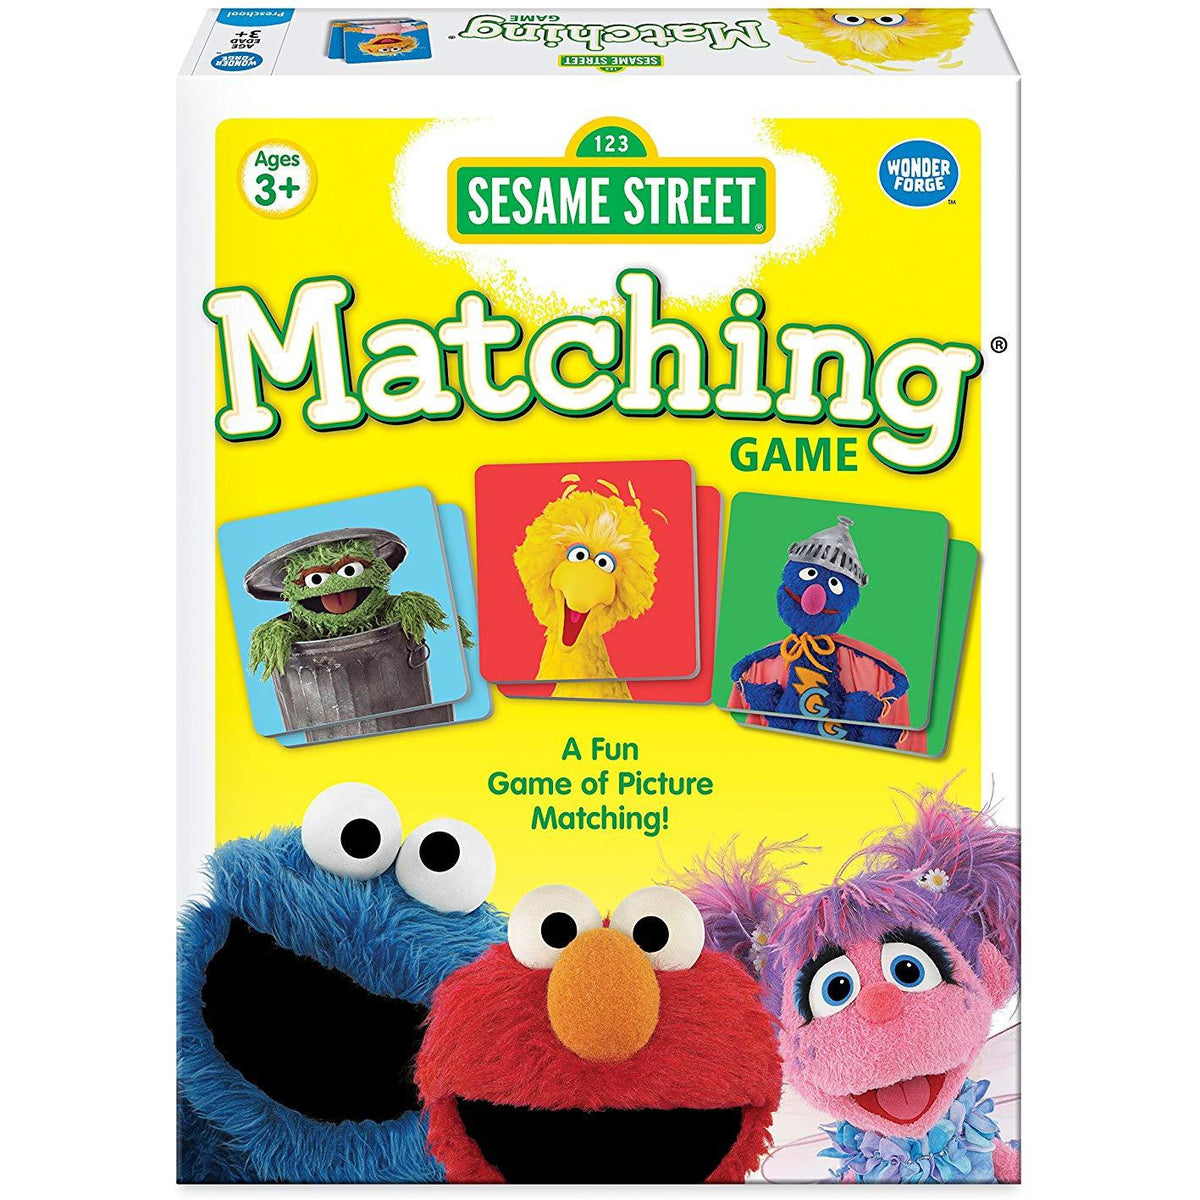 Sesame Street Matching Game canada ontario cookie monster elmo grover abby oscar big bird